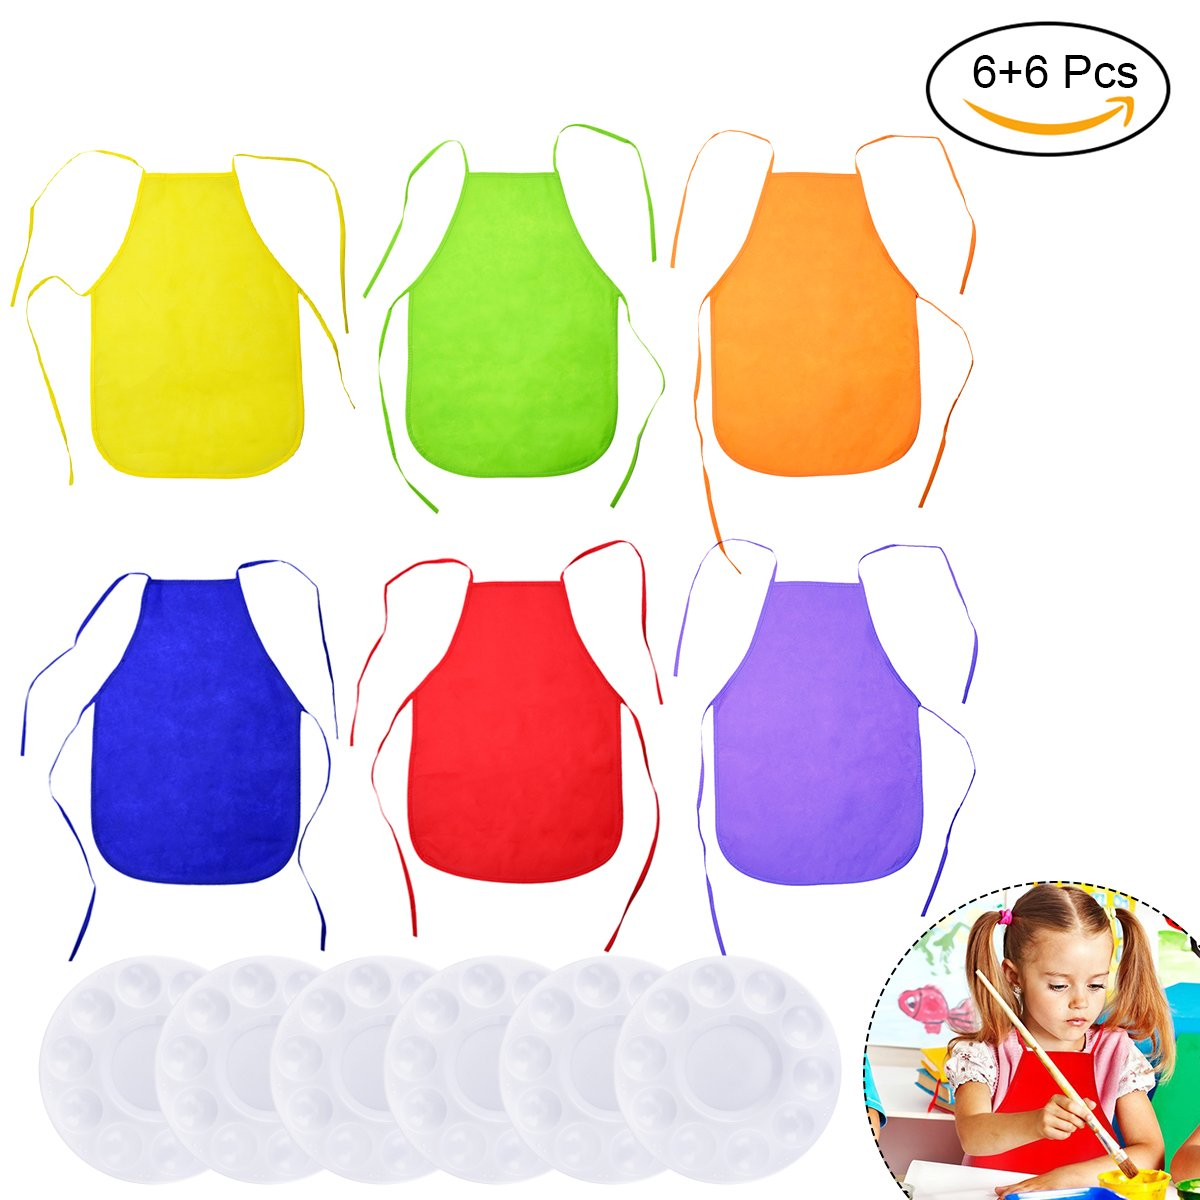 TinTop 12 Packs Chidren's Aprons Plastic Painting Pallete Painting Pallete Tray for Chidren DIY Artist Craft Painting Colorful Aprons for Birthday Party